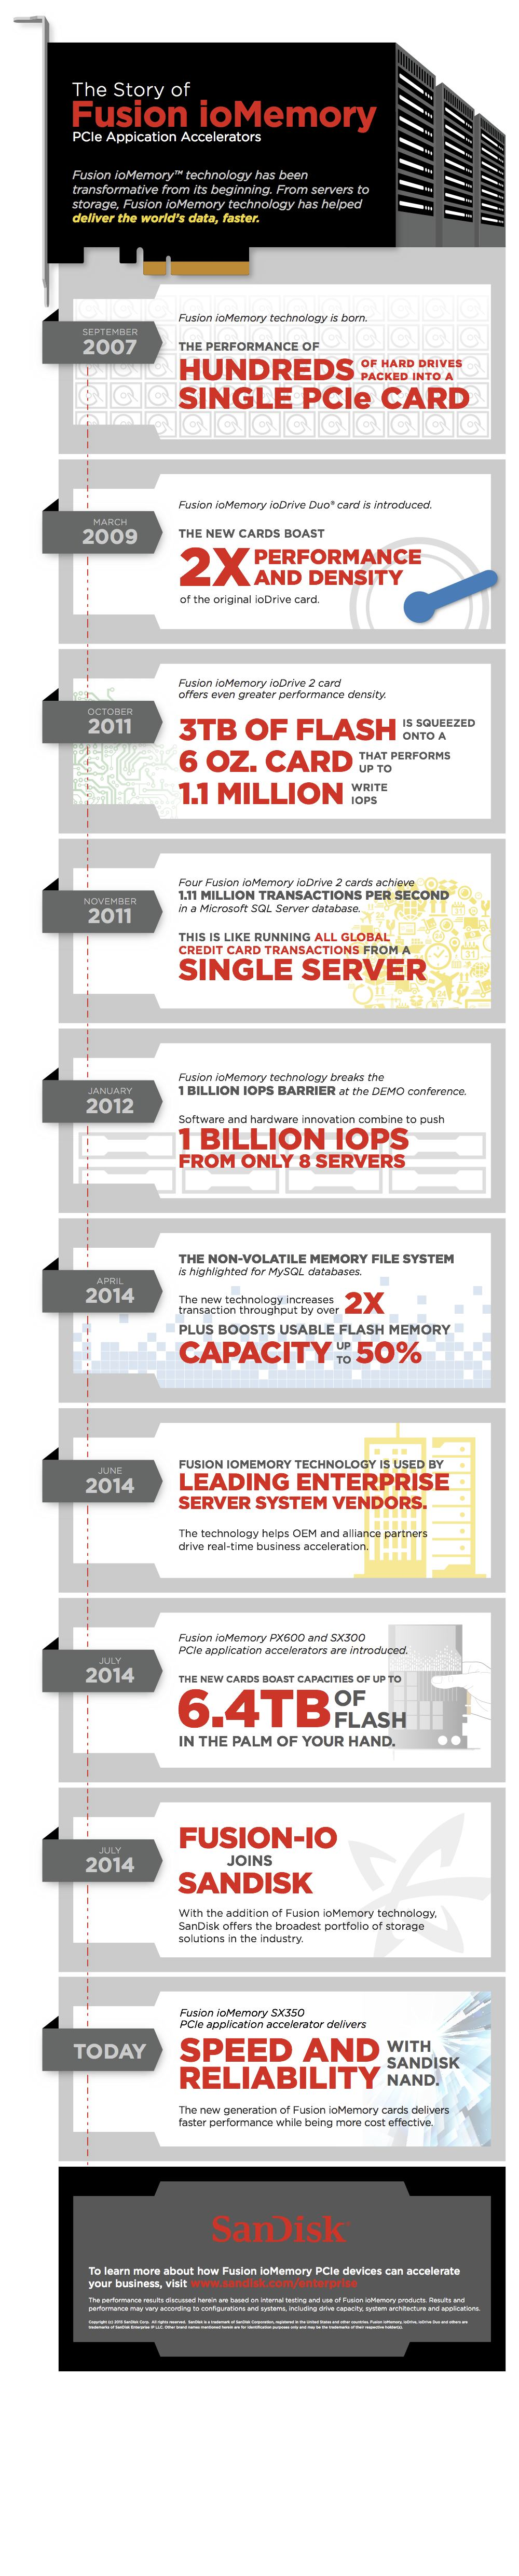 Story of Fusion ioMemory infographic